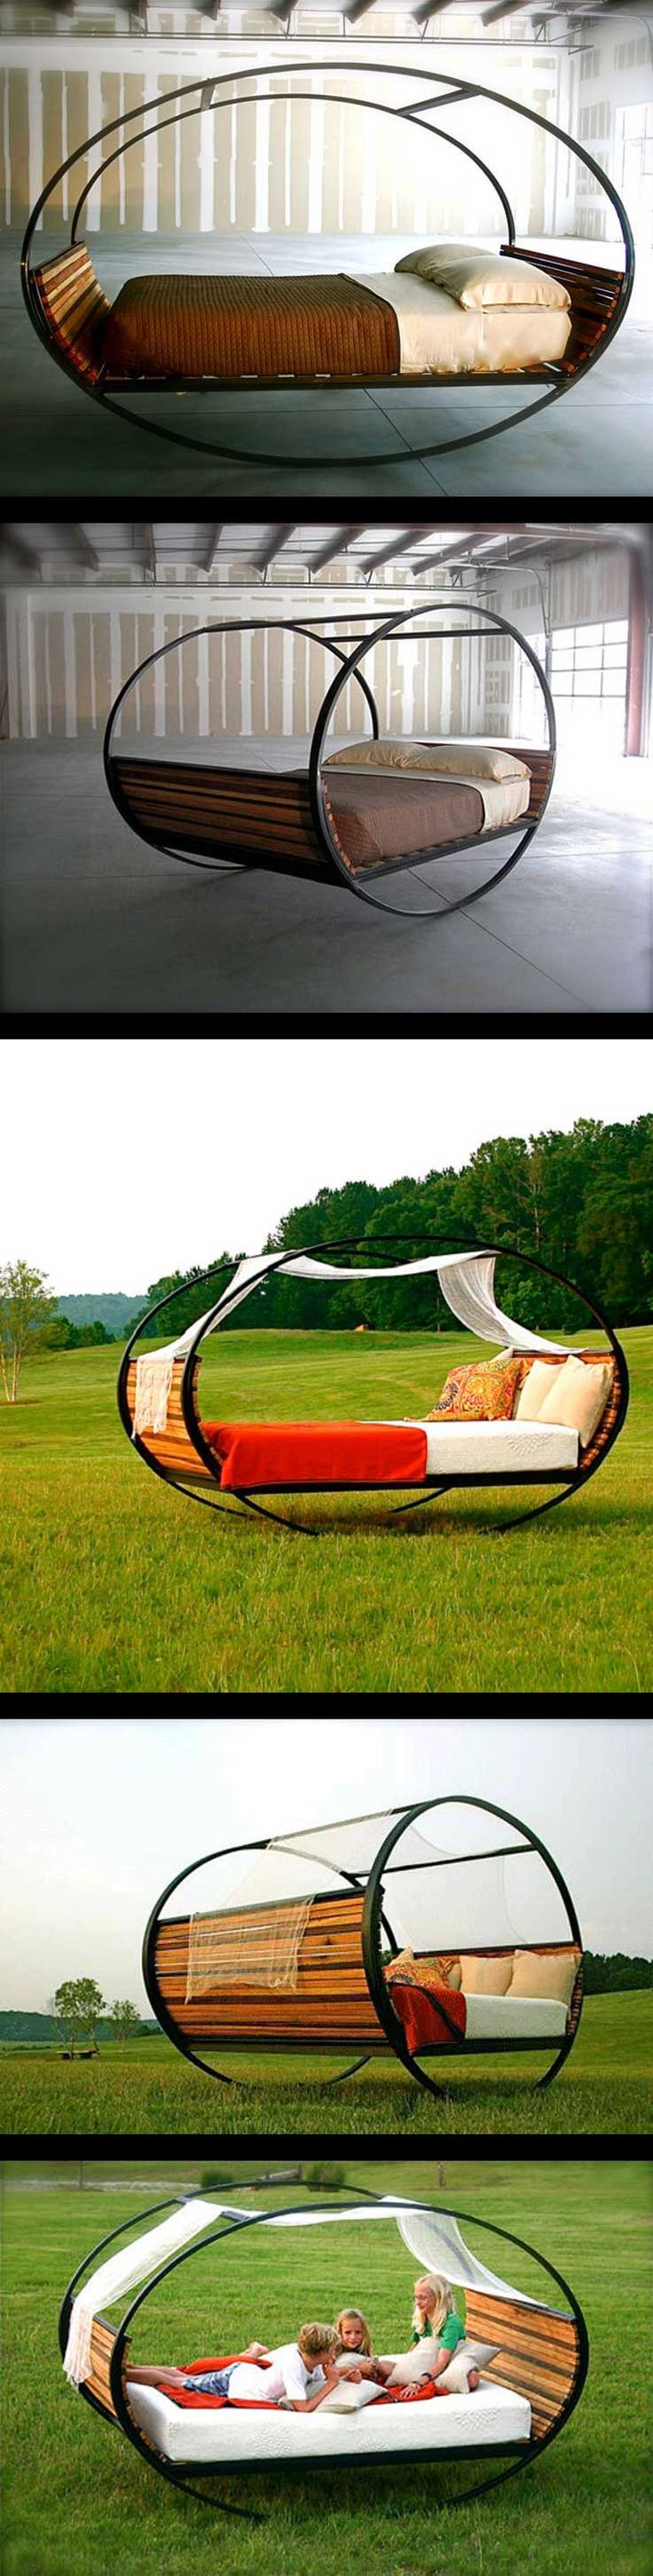 Mood Rocking Bed By Shiner International:: Hahaha! I Was Just Picturing  Myself Sleeping